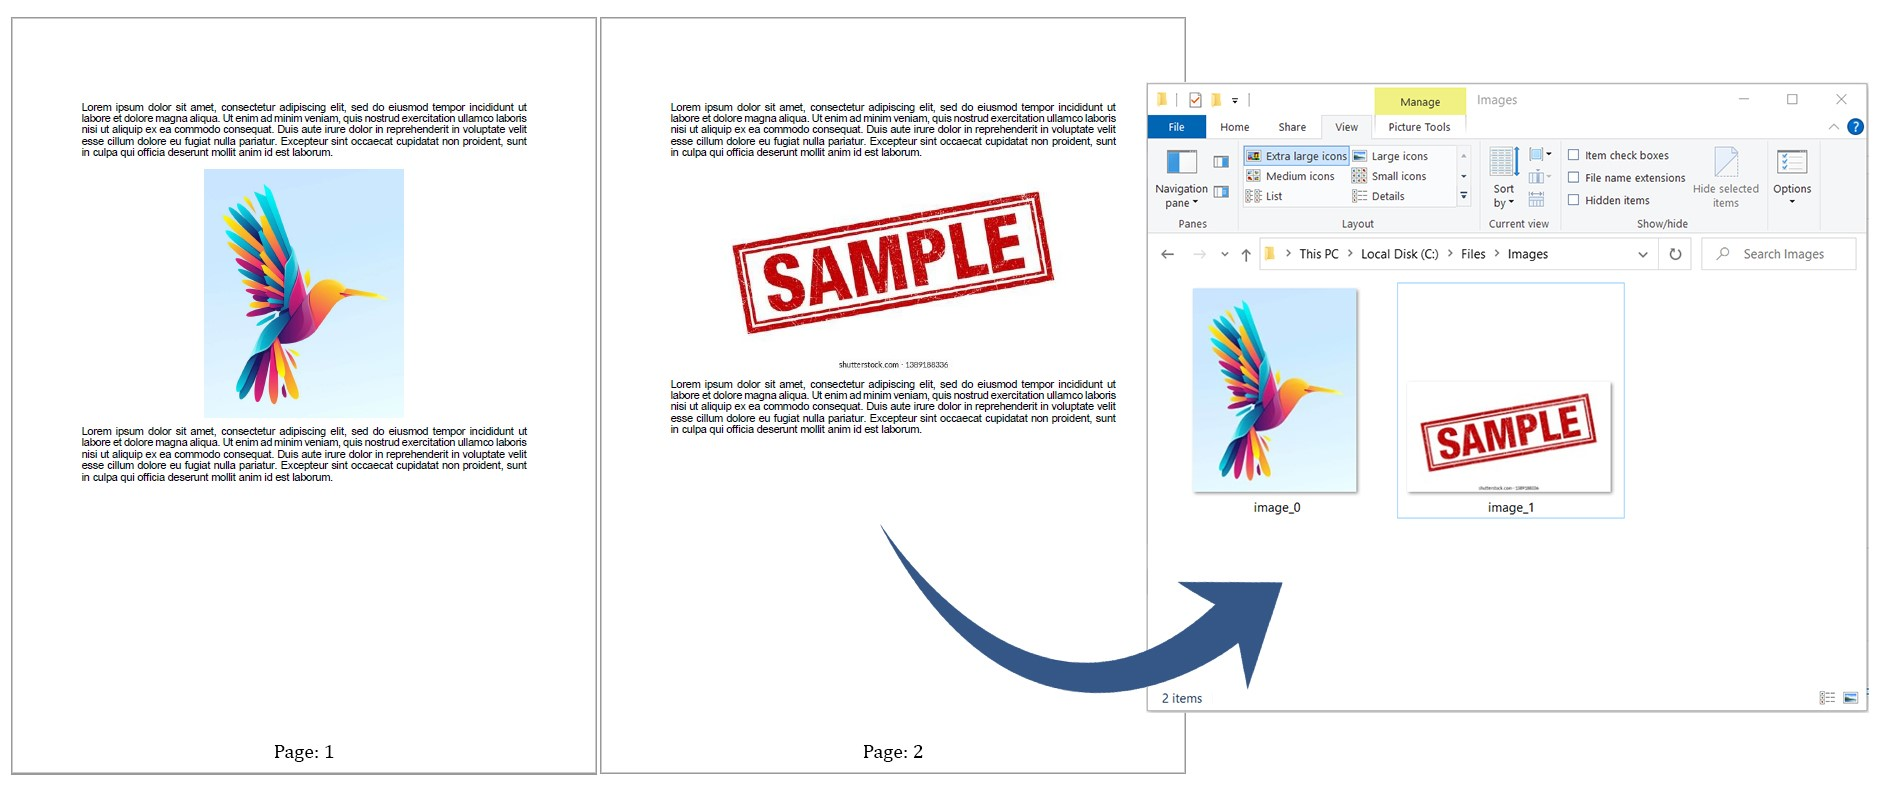 Extract all images from PDF document.